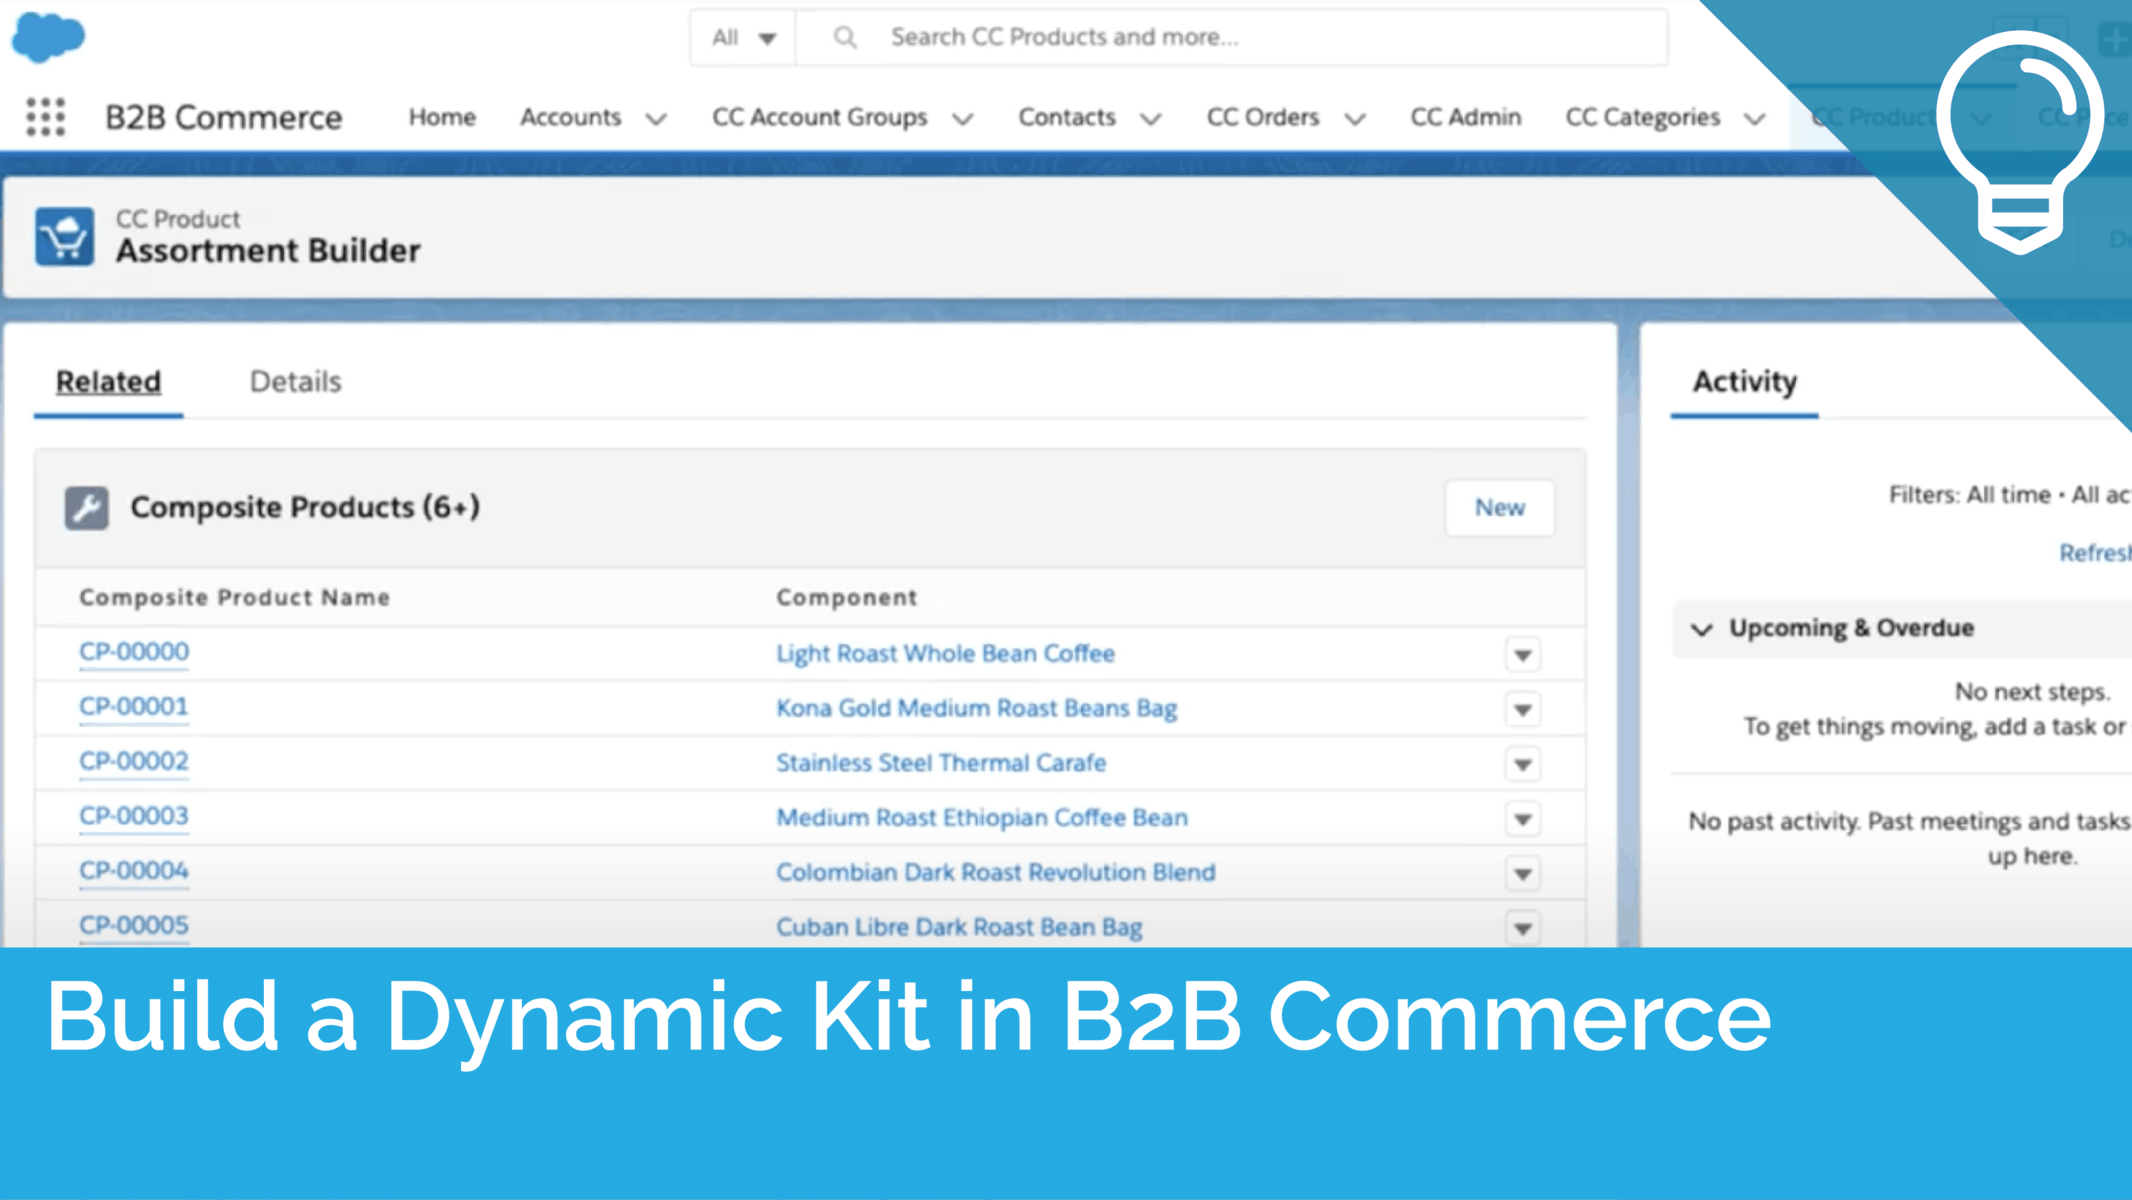 Build a Dynamic Kit in B2B Commerce